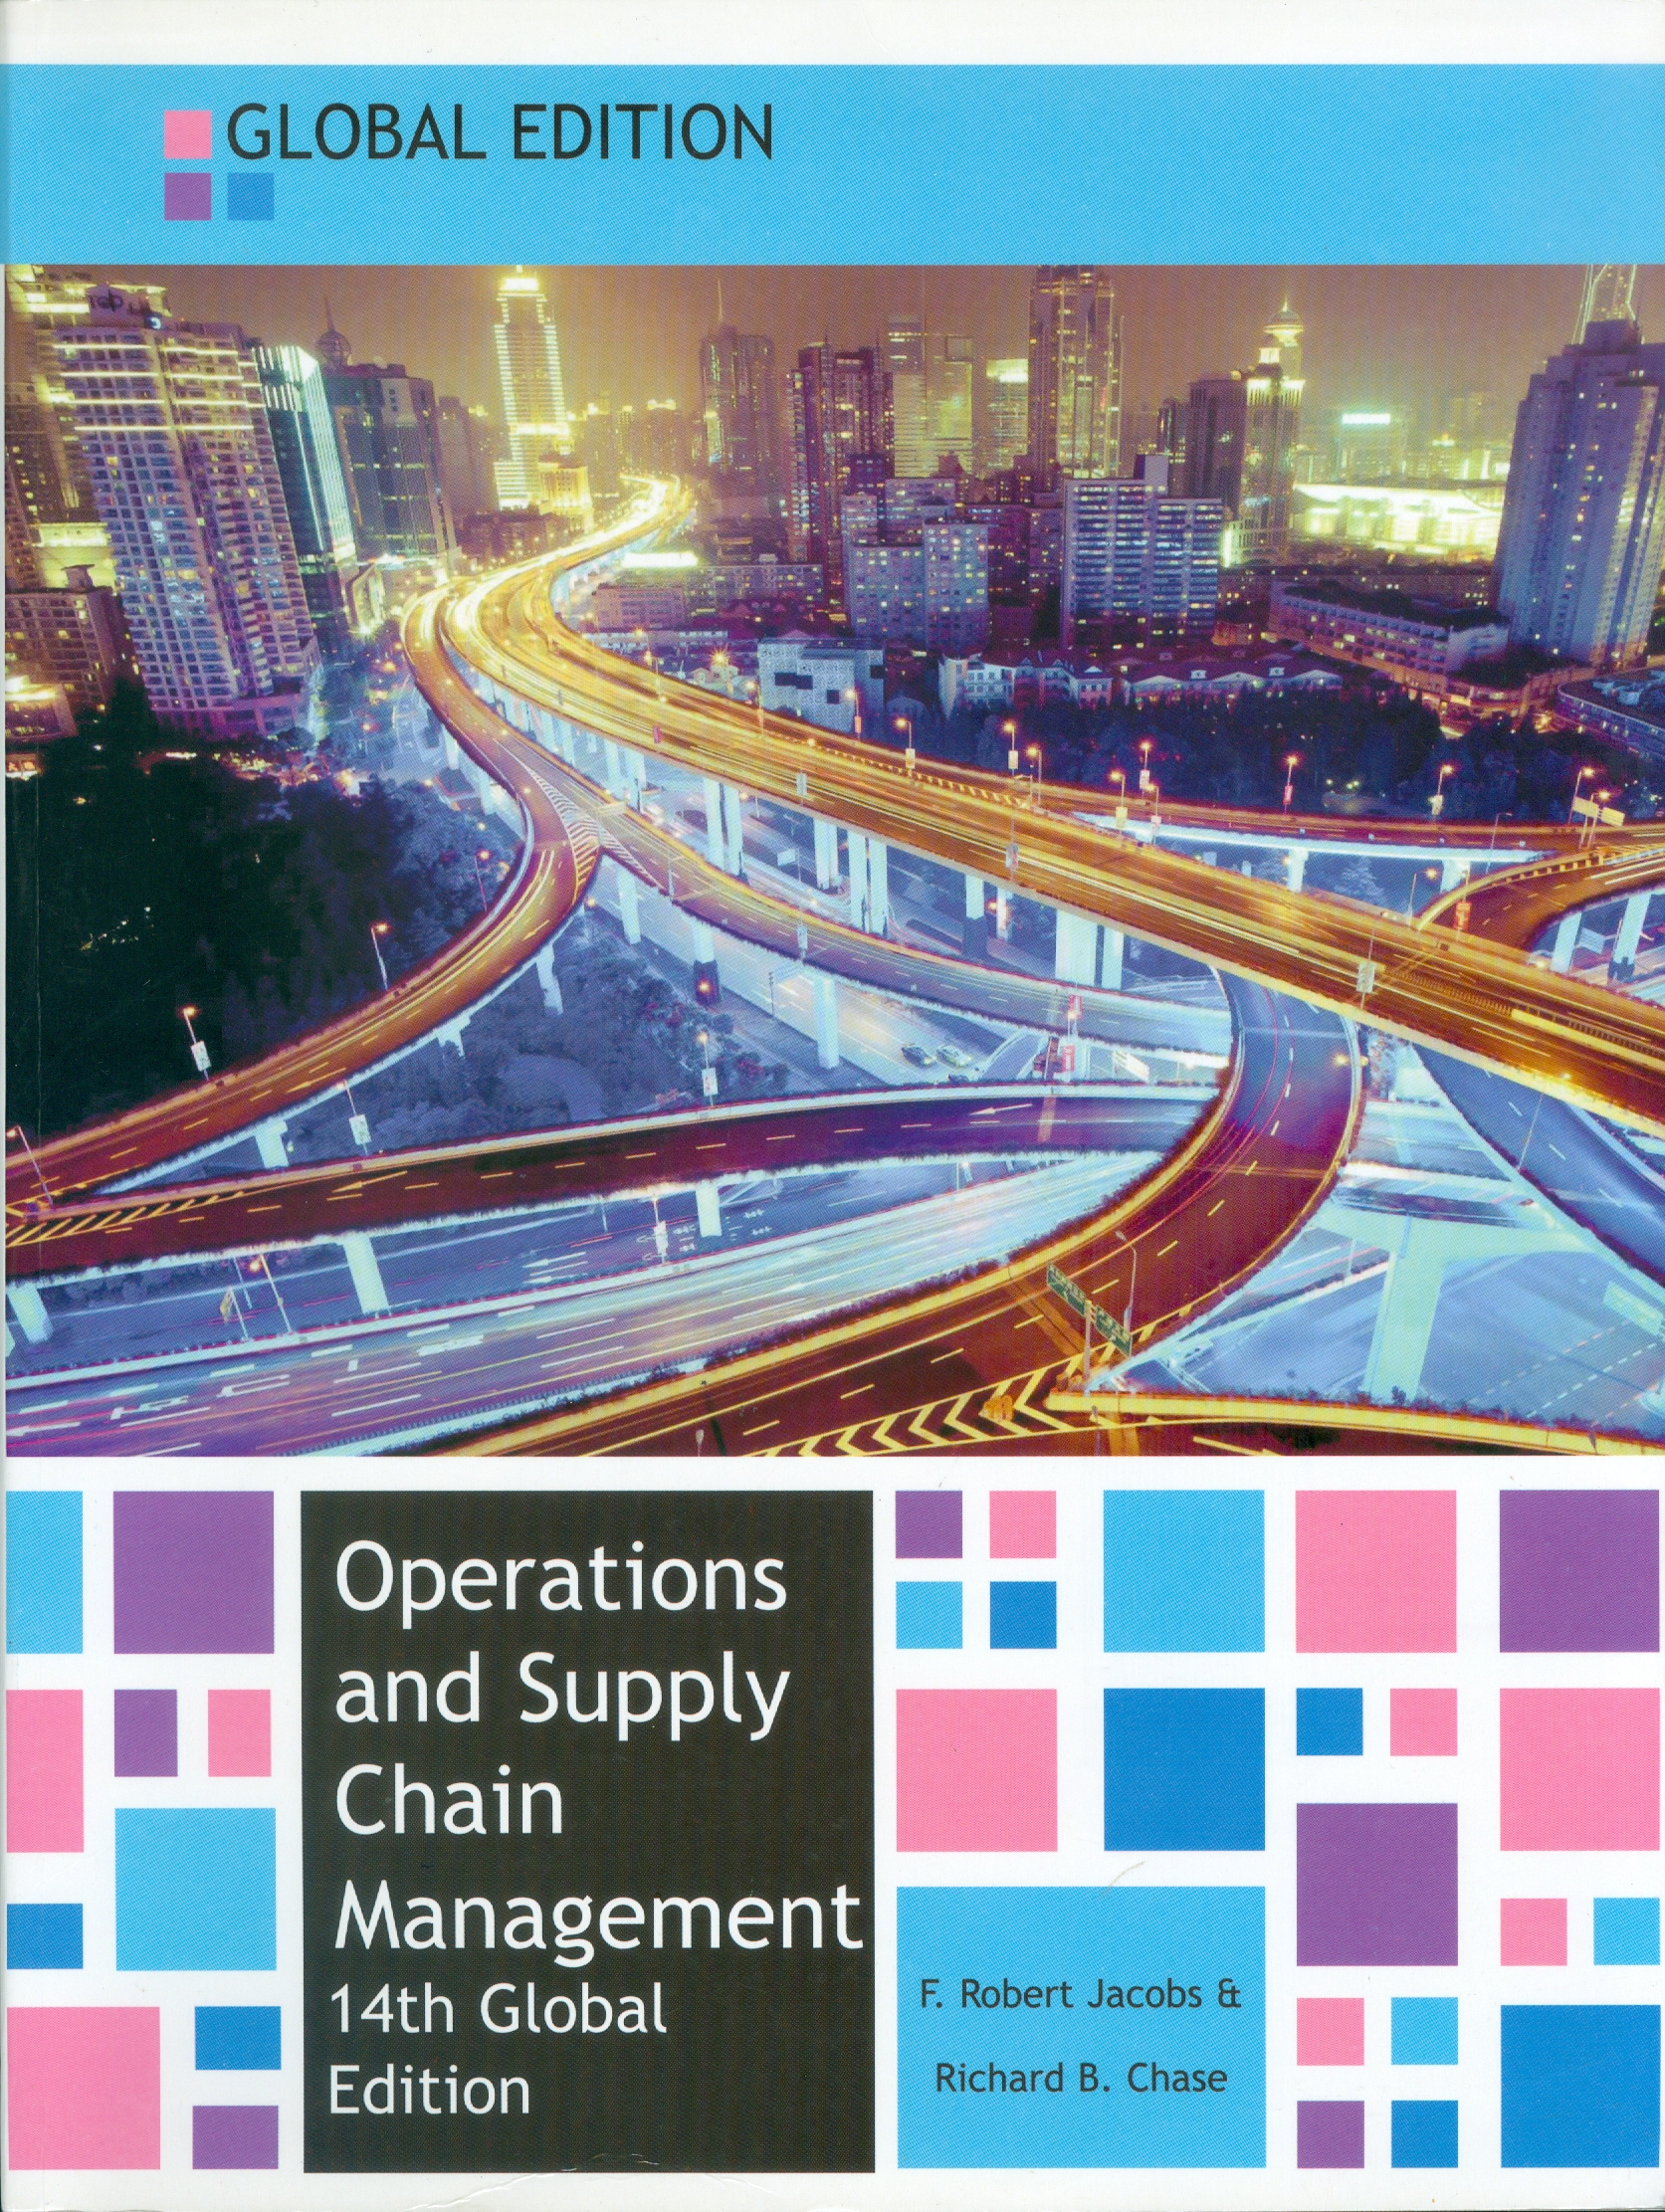 operations and supply chain management0001.jpg